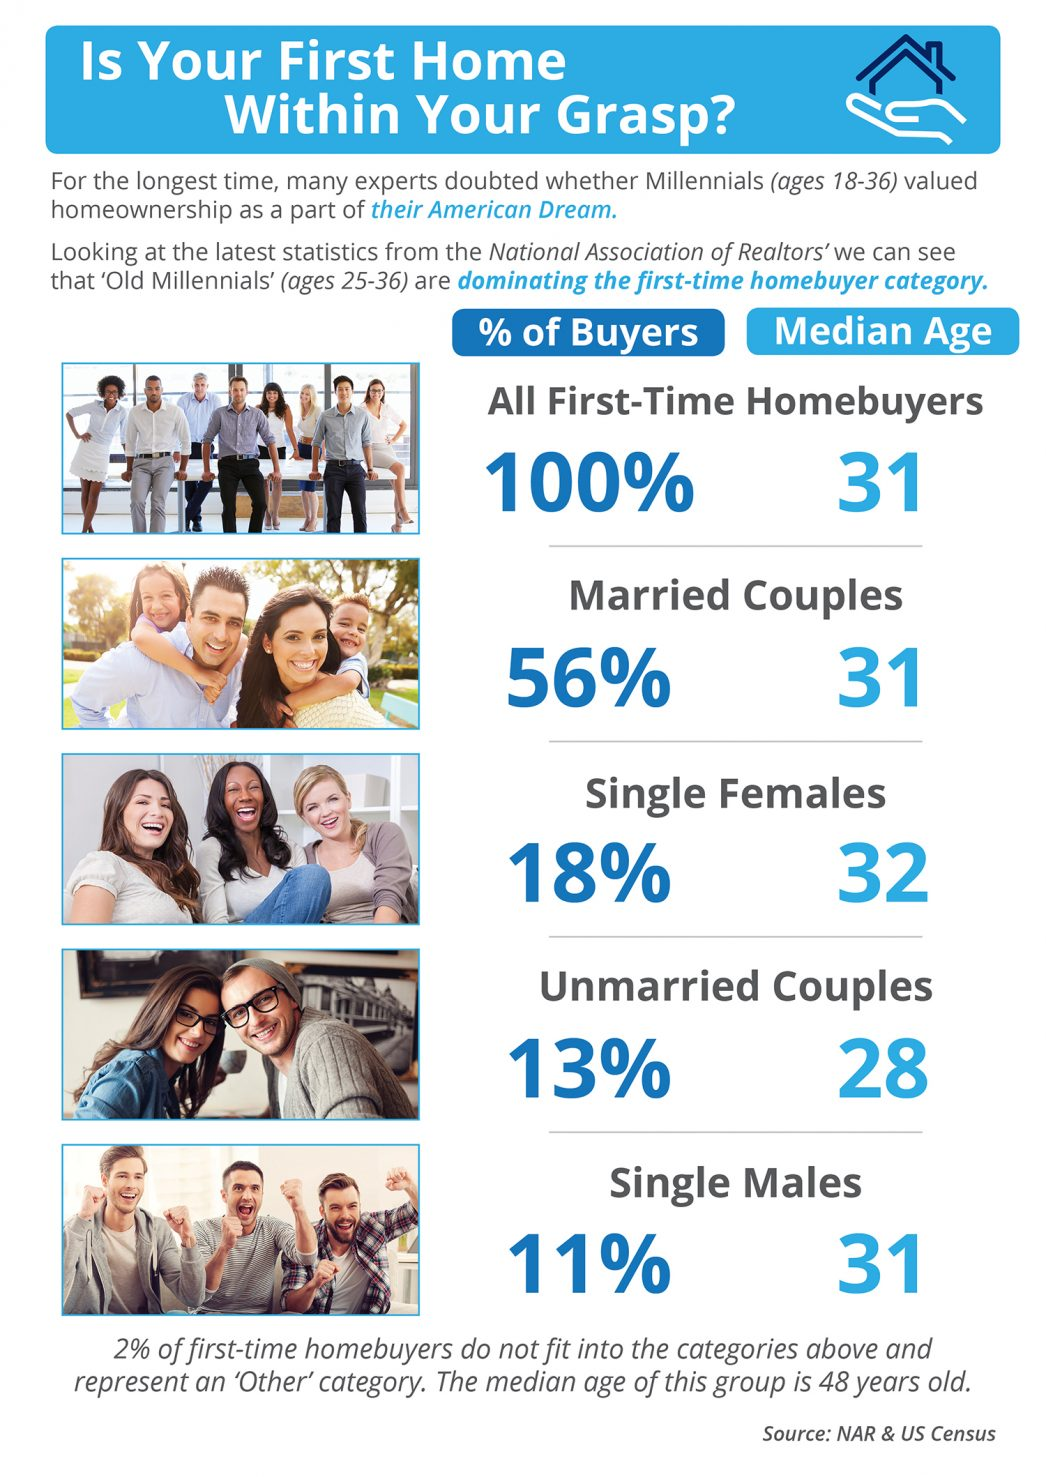 Is Your First Home Within Your Grasp? [INFOGRAPHIC] | MyKCM